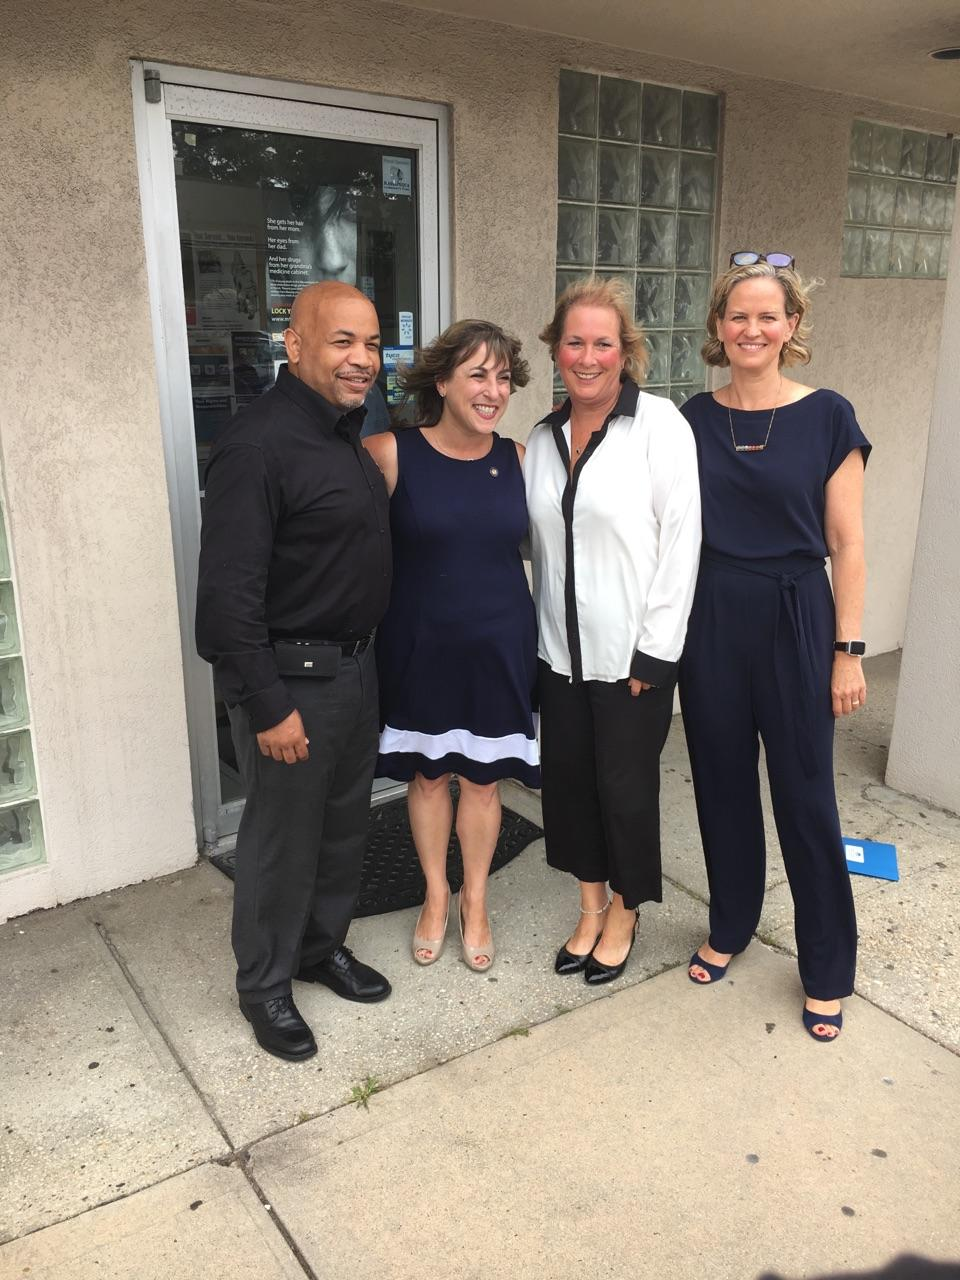 Pictured with Speaker Heastie in the first photo at YES Community Counseling Center (from left to right): Assemblymember Christine Pellegrino, YES Community Counseling Center Executive Director Jamie Bogenschultz and Nassau County Executive Laura Curran.